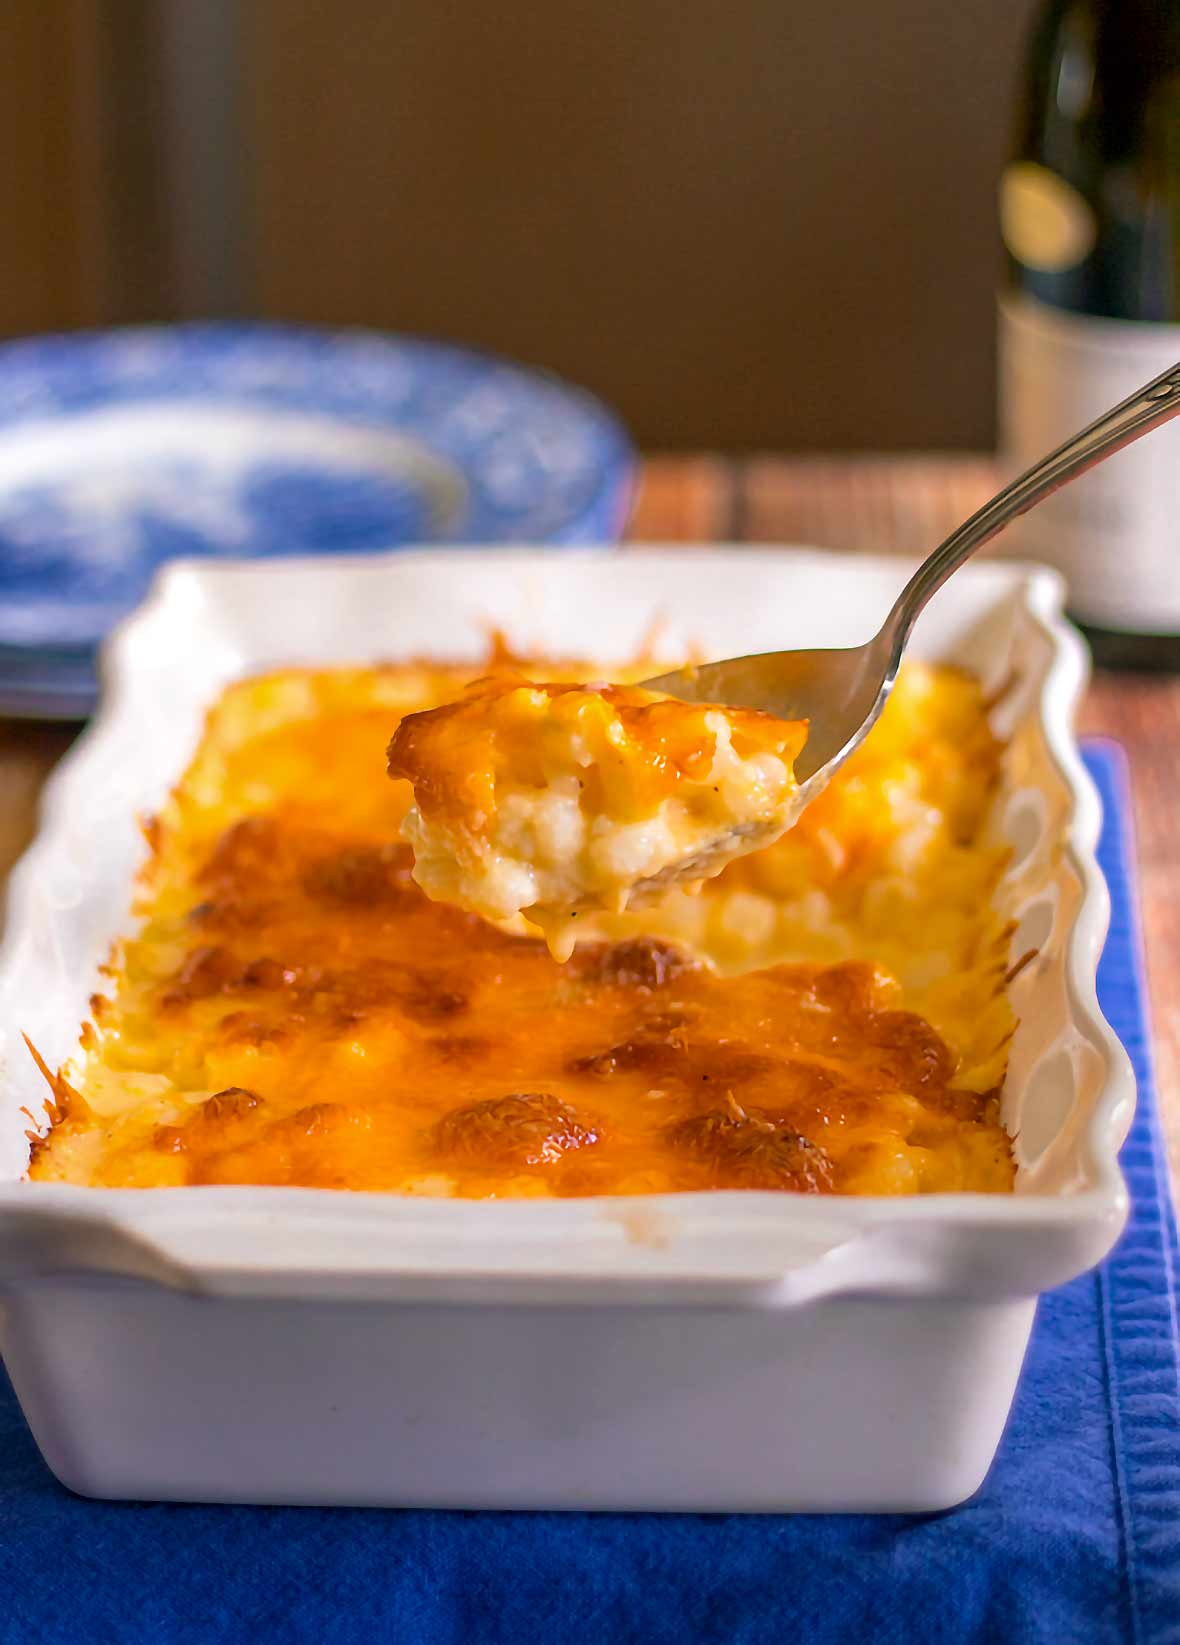 A casserole dish of hominy au gratin--hominy in a cheese sauce--plus a spoon filled with the cheesy hominy